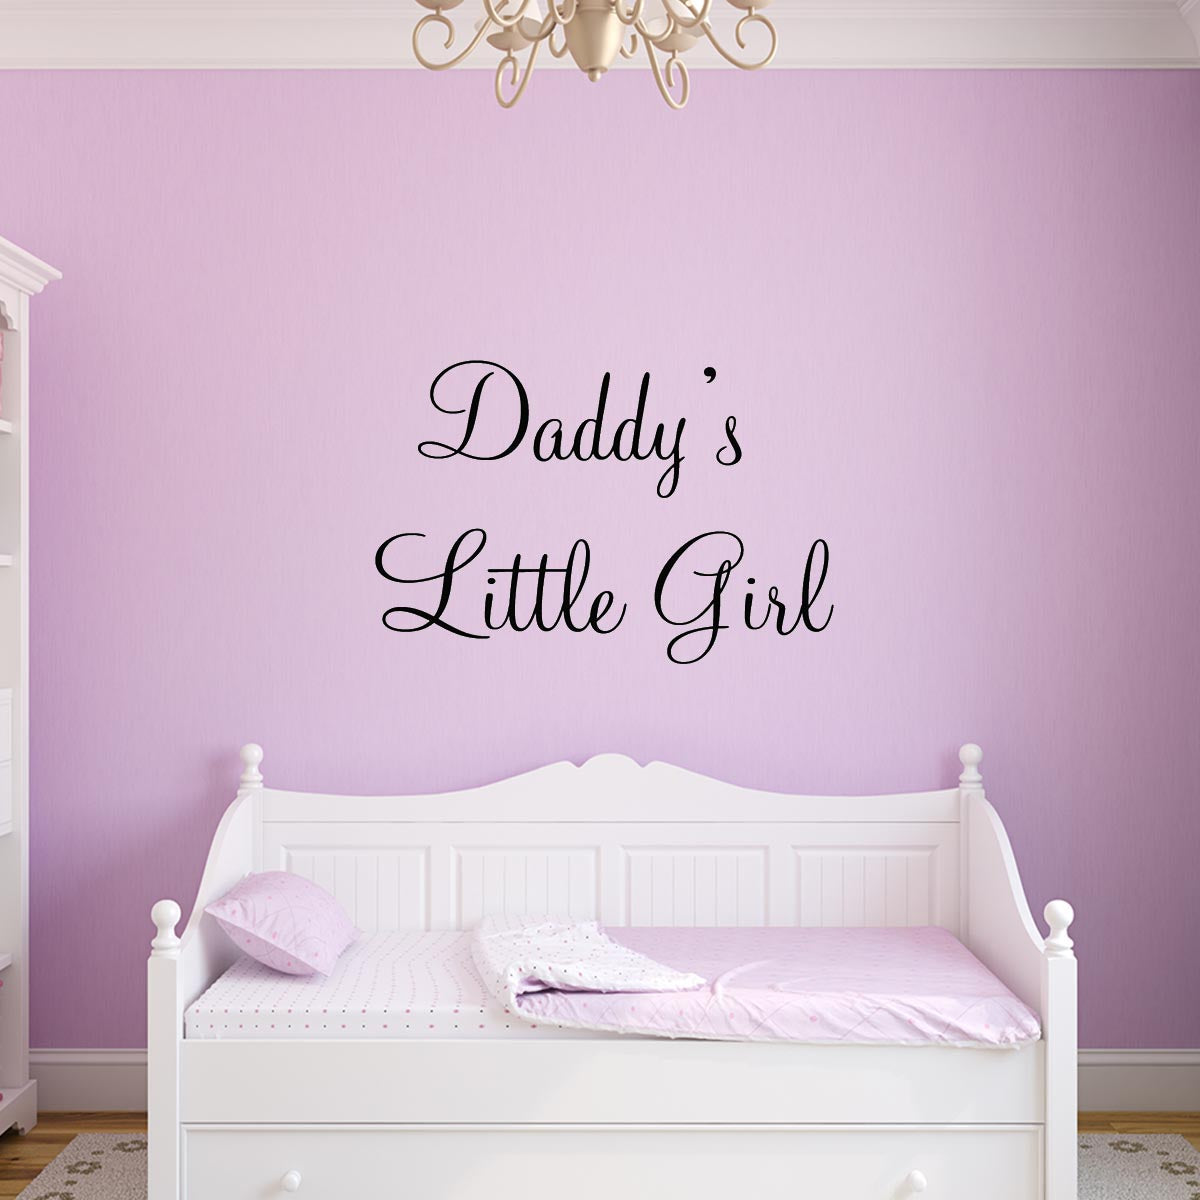 VWAQ Daddy's Little Girl Quotes Nursery Wall Decal - VWAQ Vinyl Wall Art Quotes and Prints